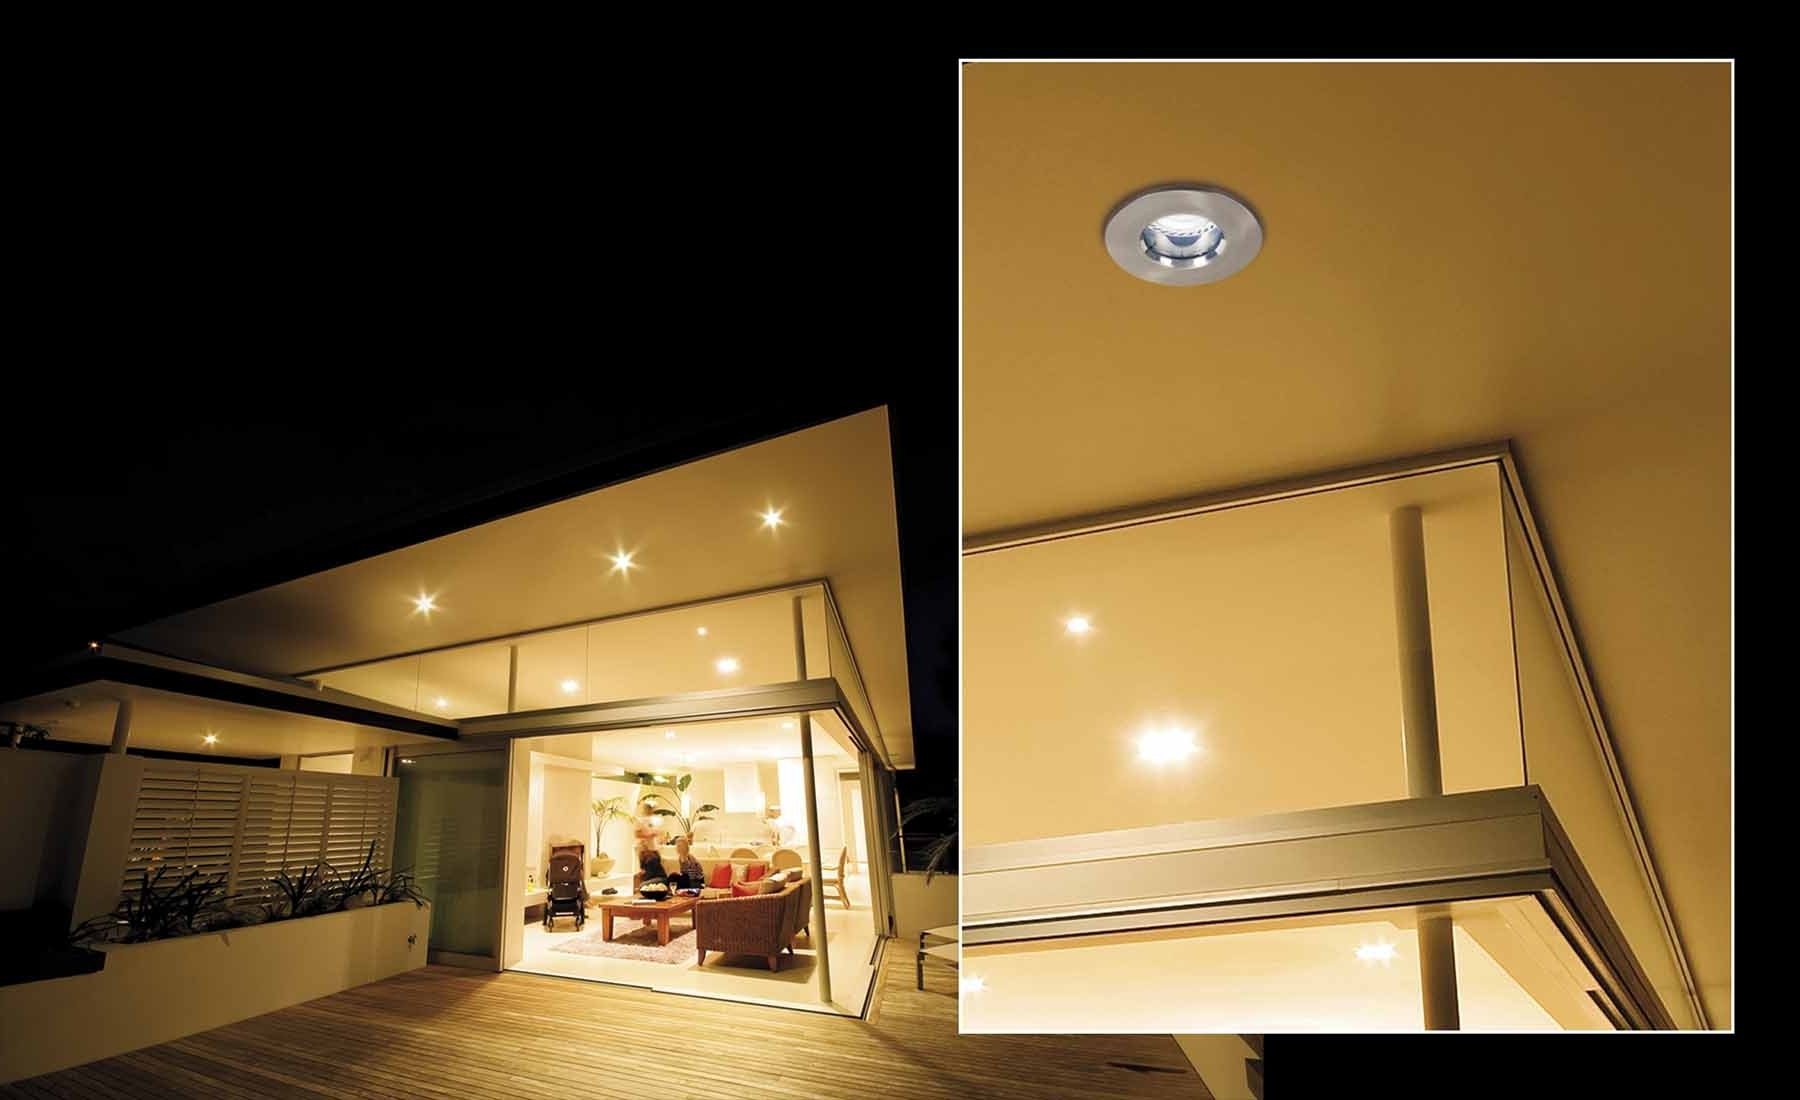 Outdoor Recessed Ceiling Lights Throughout Most Current Outdoor Led Recessed Lighting – Outdoor Designs (View 15 of 20)